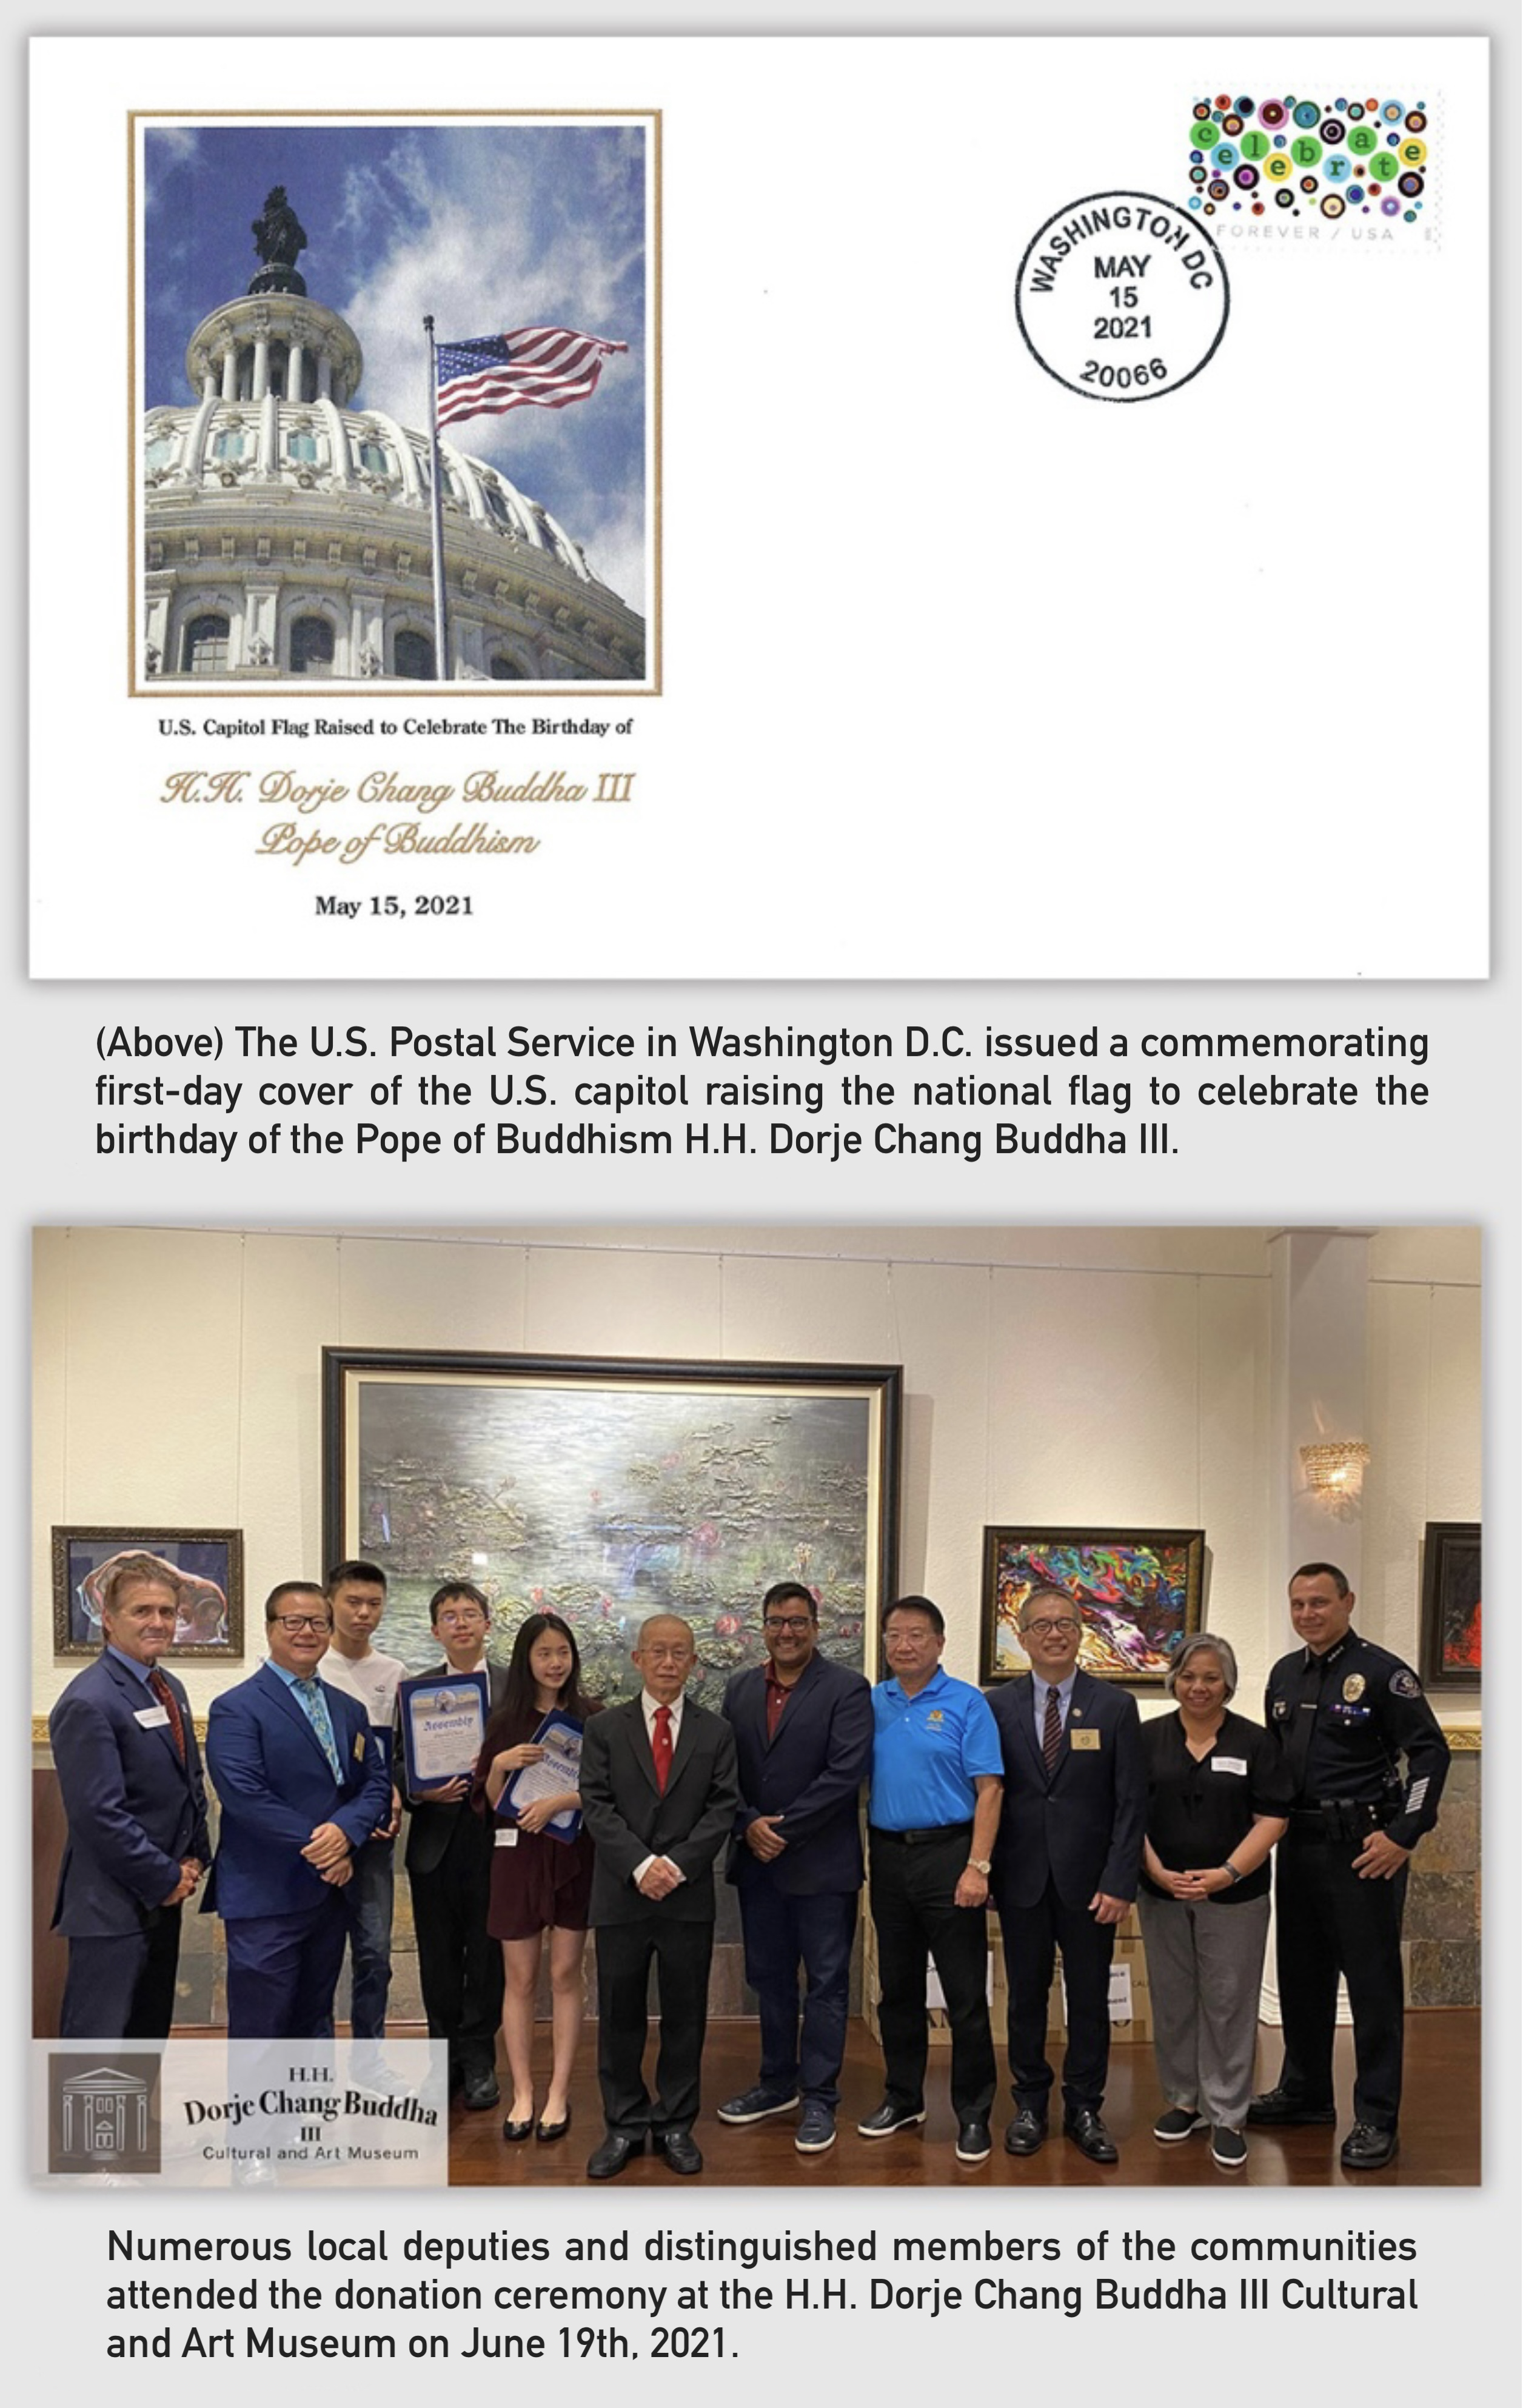 THE U.S. POSTAL SERVICE IN WASHINGTON D.C. ISSUED A COMMEMORATING FIRST-DAY COVER OF THE U.S. CAPITOL RAISING THE NATIONAL FLAG TO CELEBRATE THE BIRTHDAY OF THE POPE OF BUDDHISM H.H. DORJE CHANG BUDDHA III